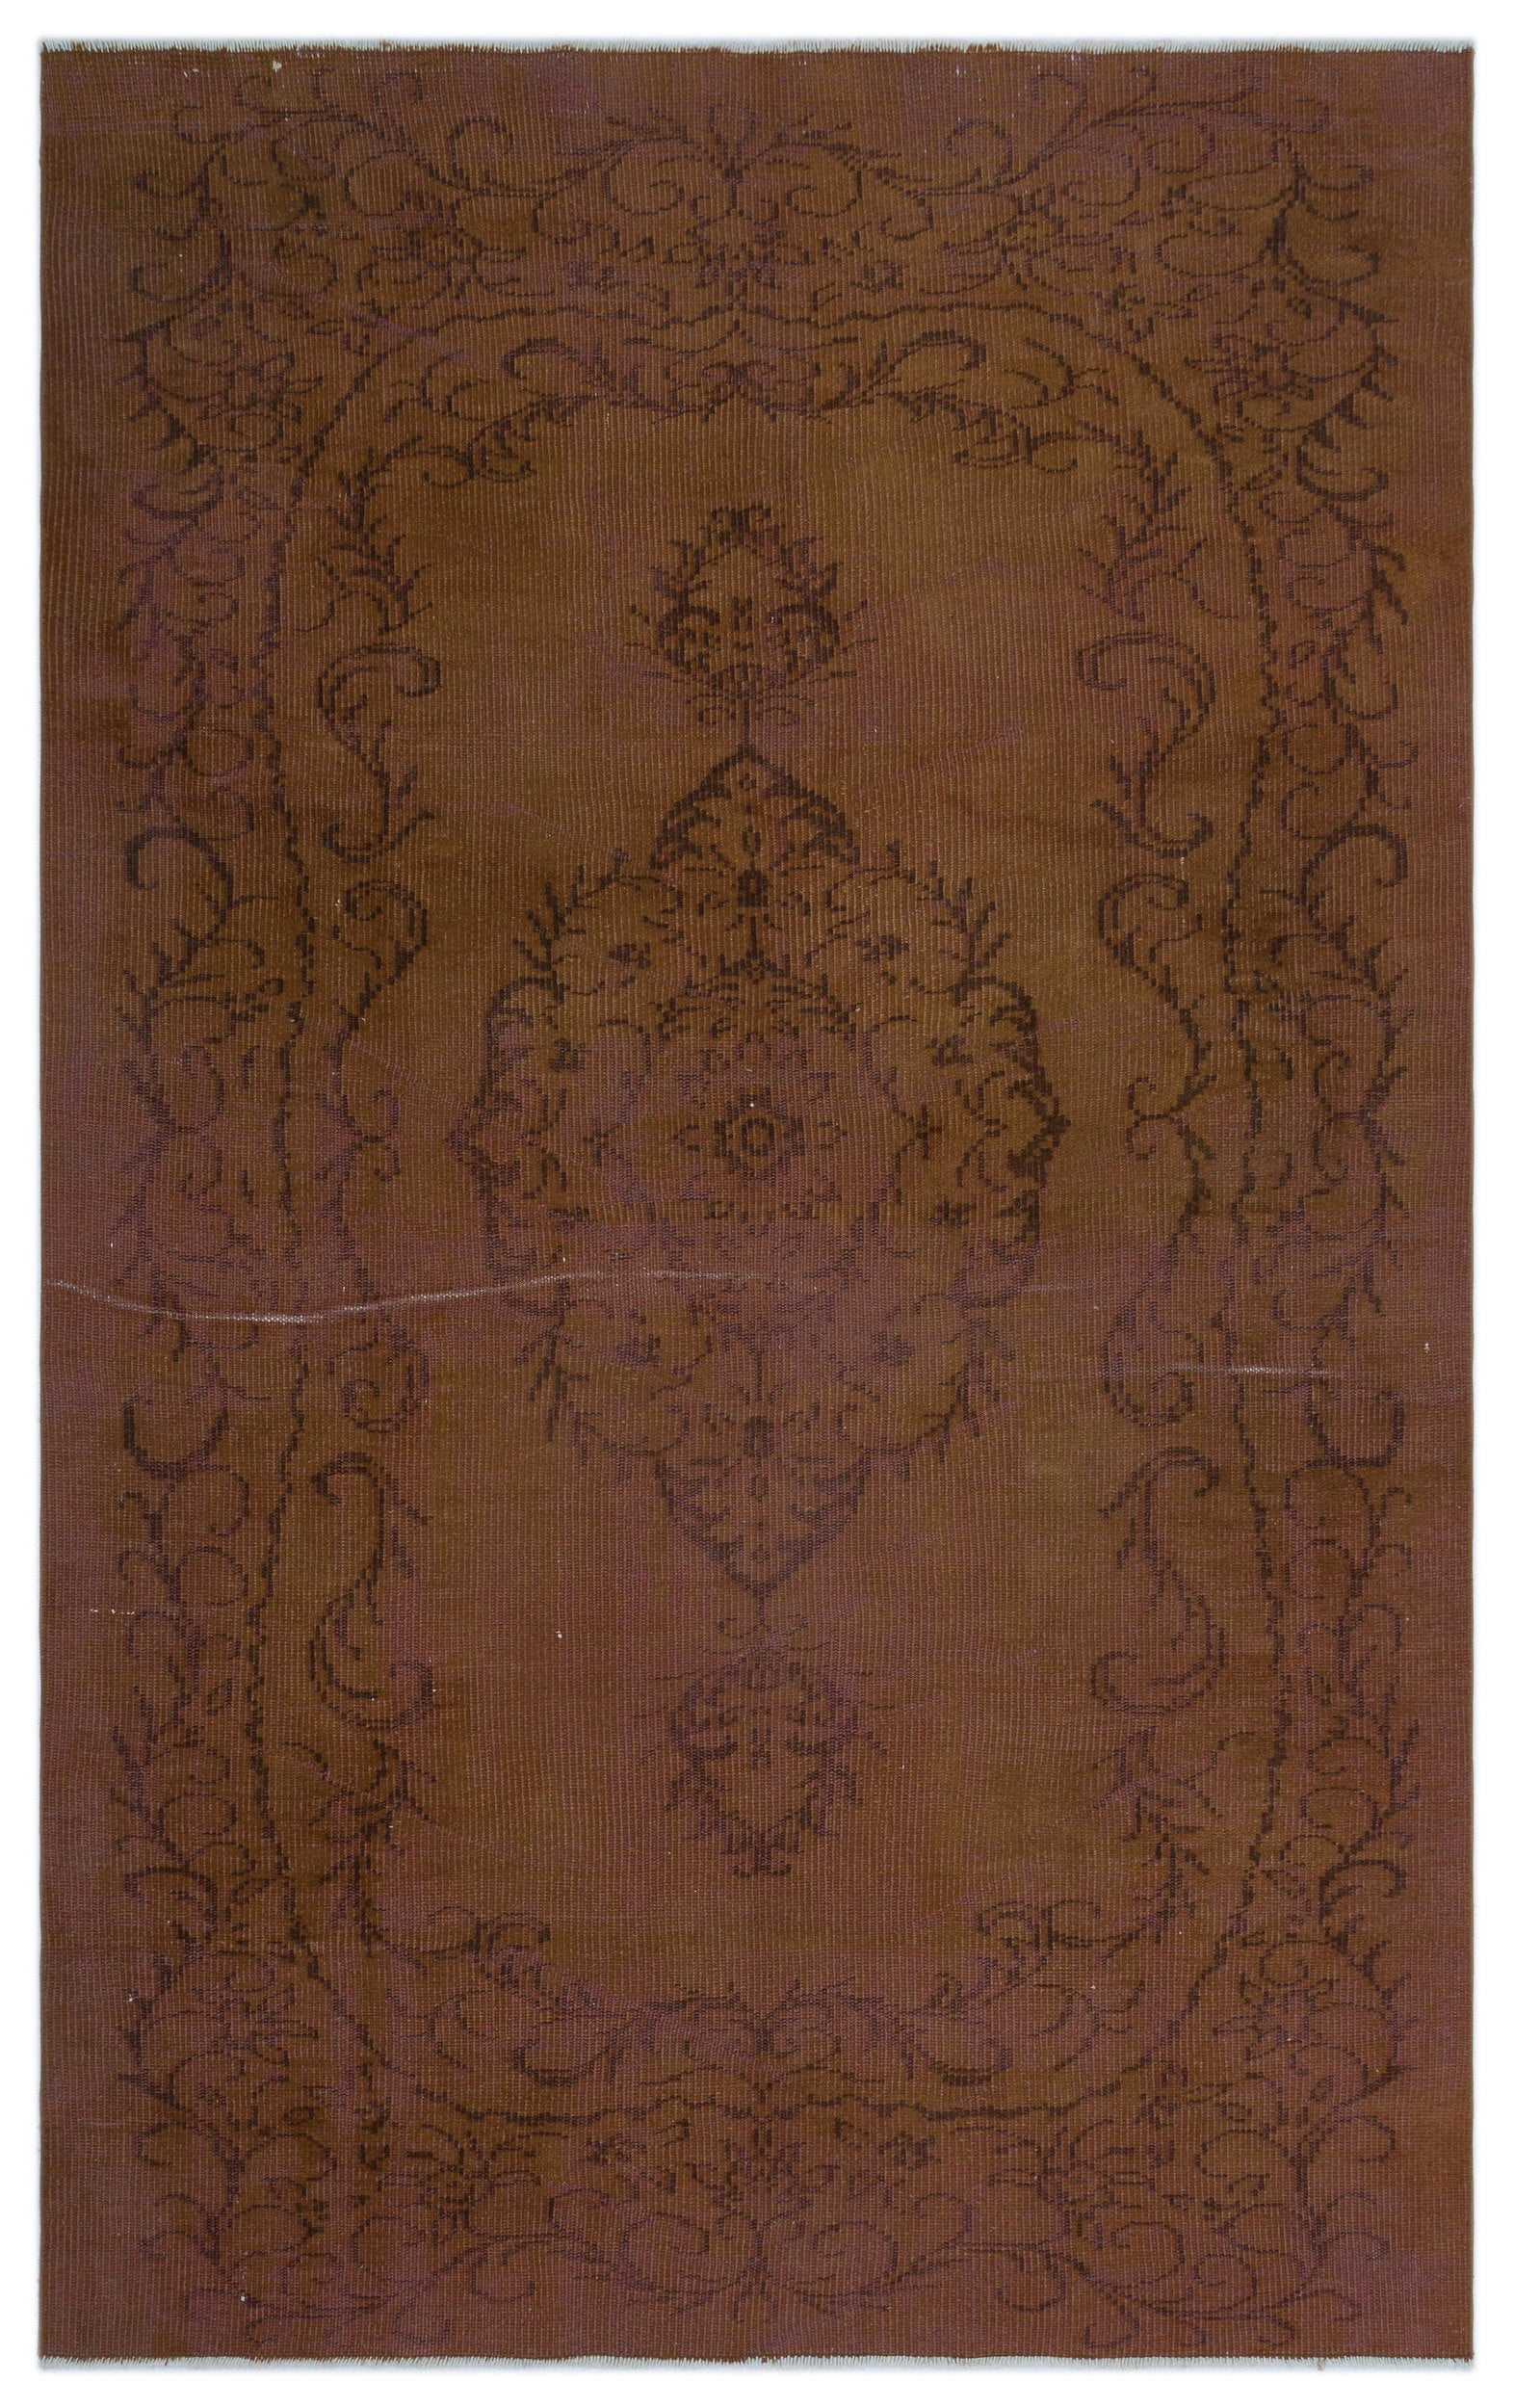 Brown Over Dyed Vintage Rug 5'5'' x 8'7'' ft 165 x 261 cm